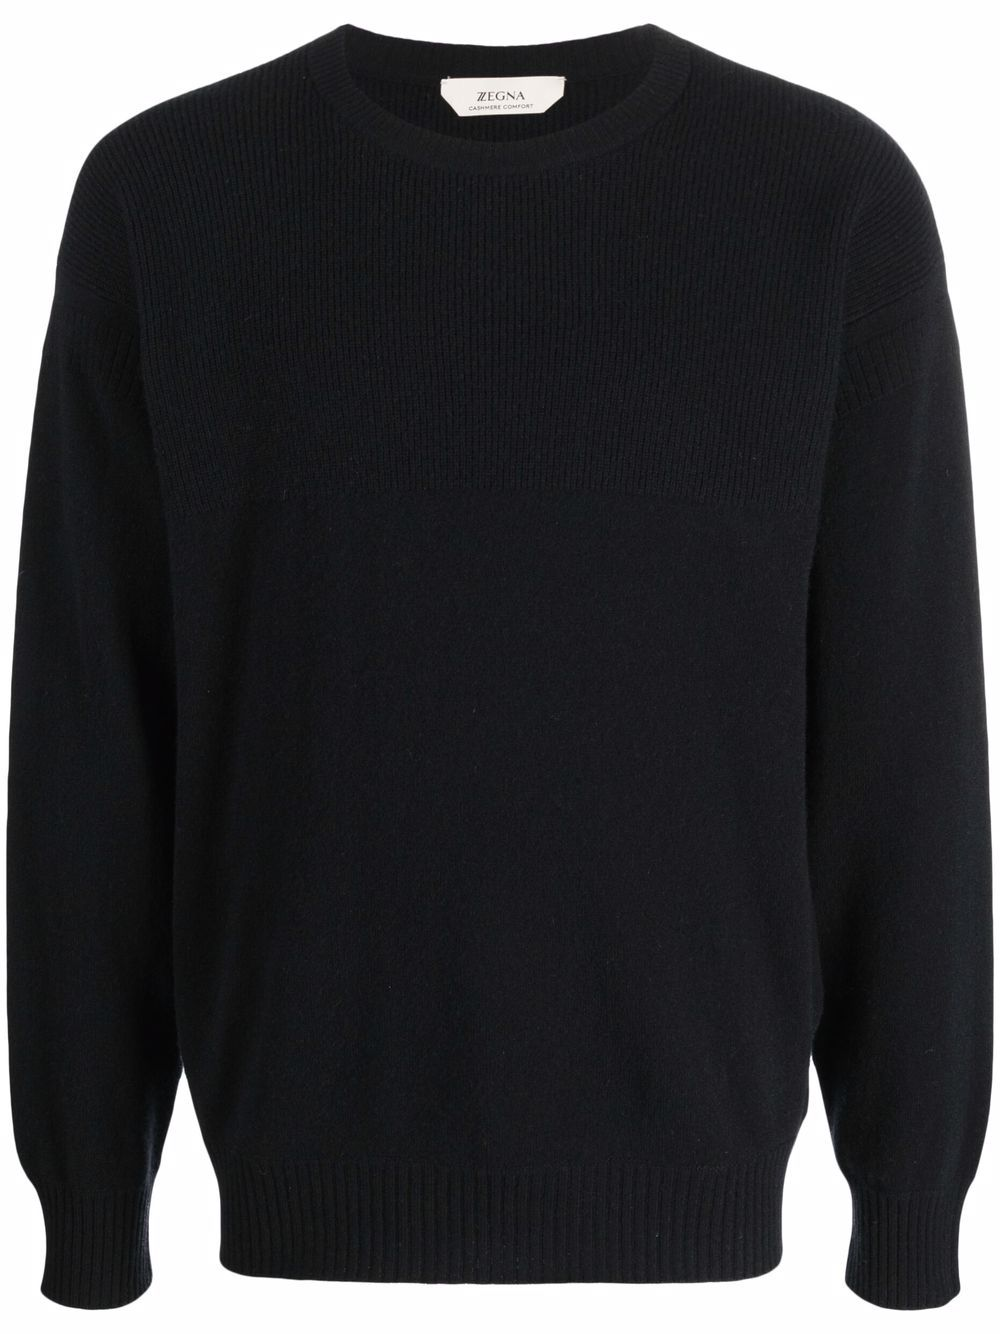 <p class='small-title'>Z ZEGNA</p>Ribbed Knit Jumper